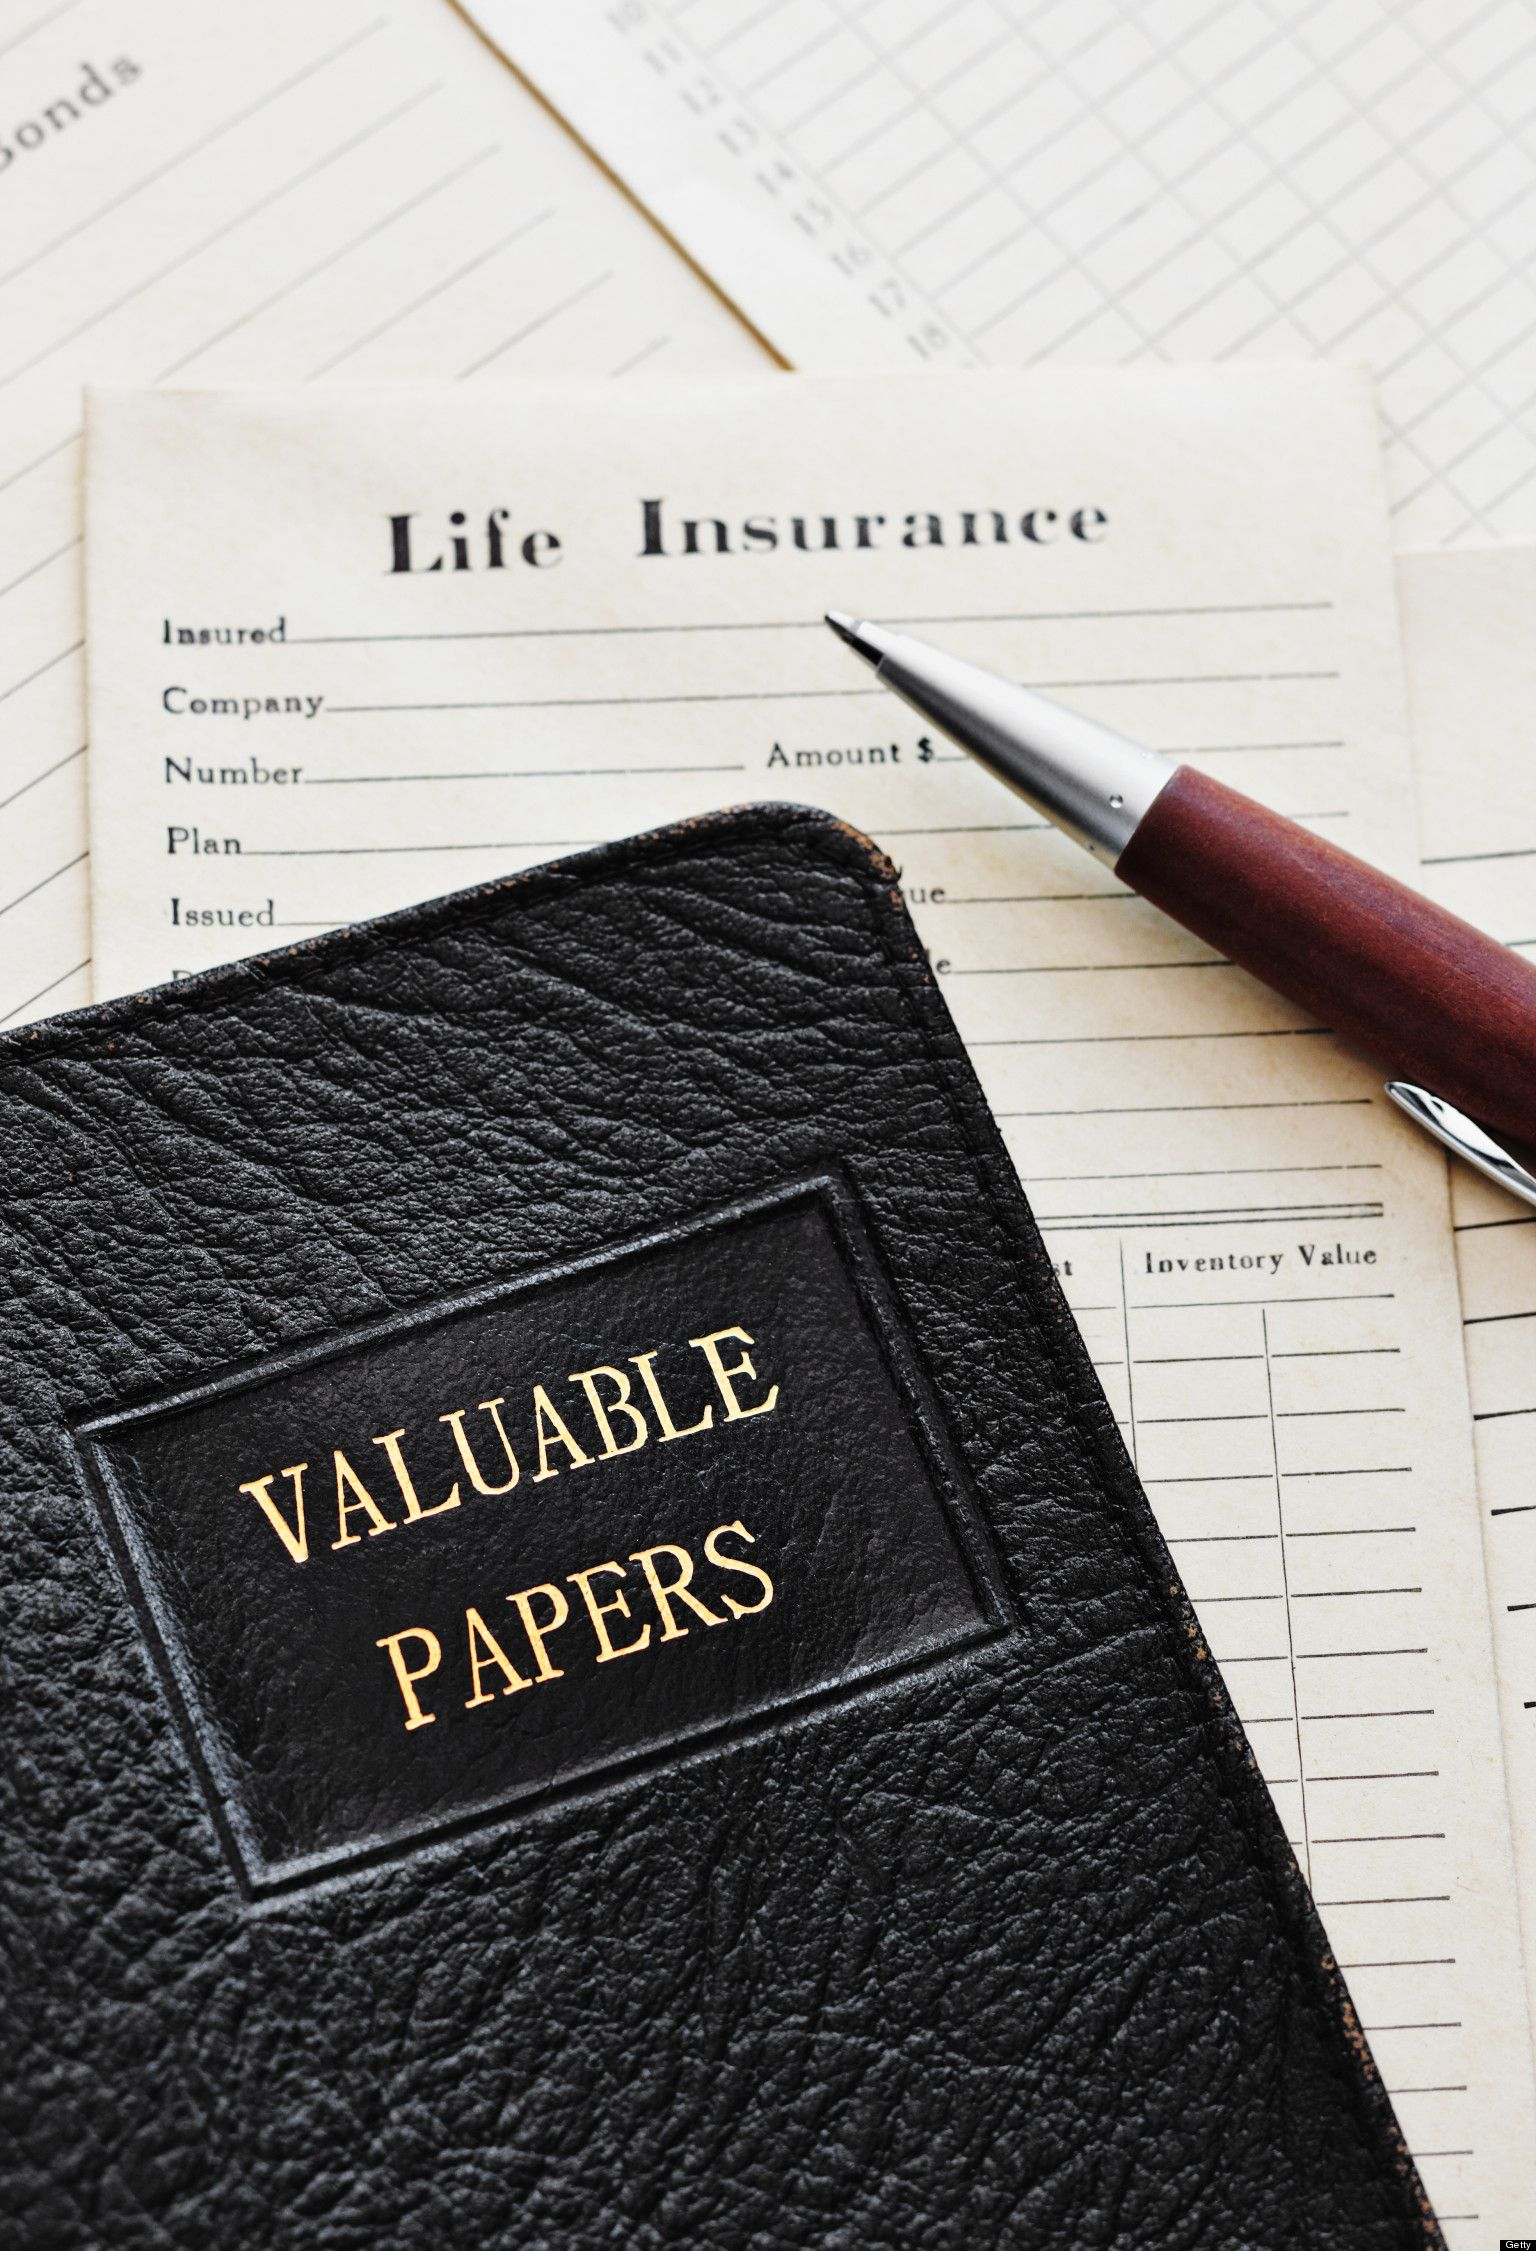 Quotes On Life Insurance Policies To Find Lost Life Insurance Policies